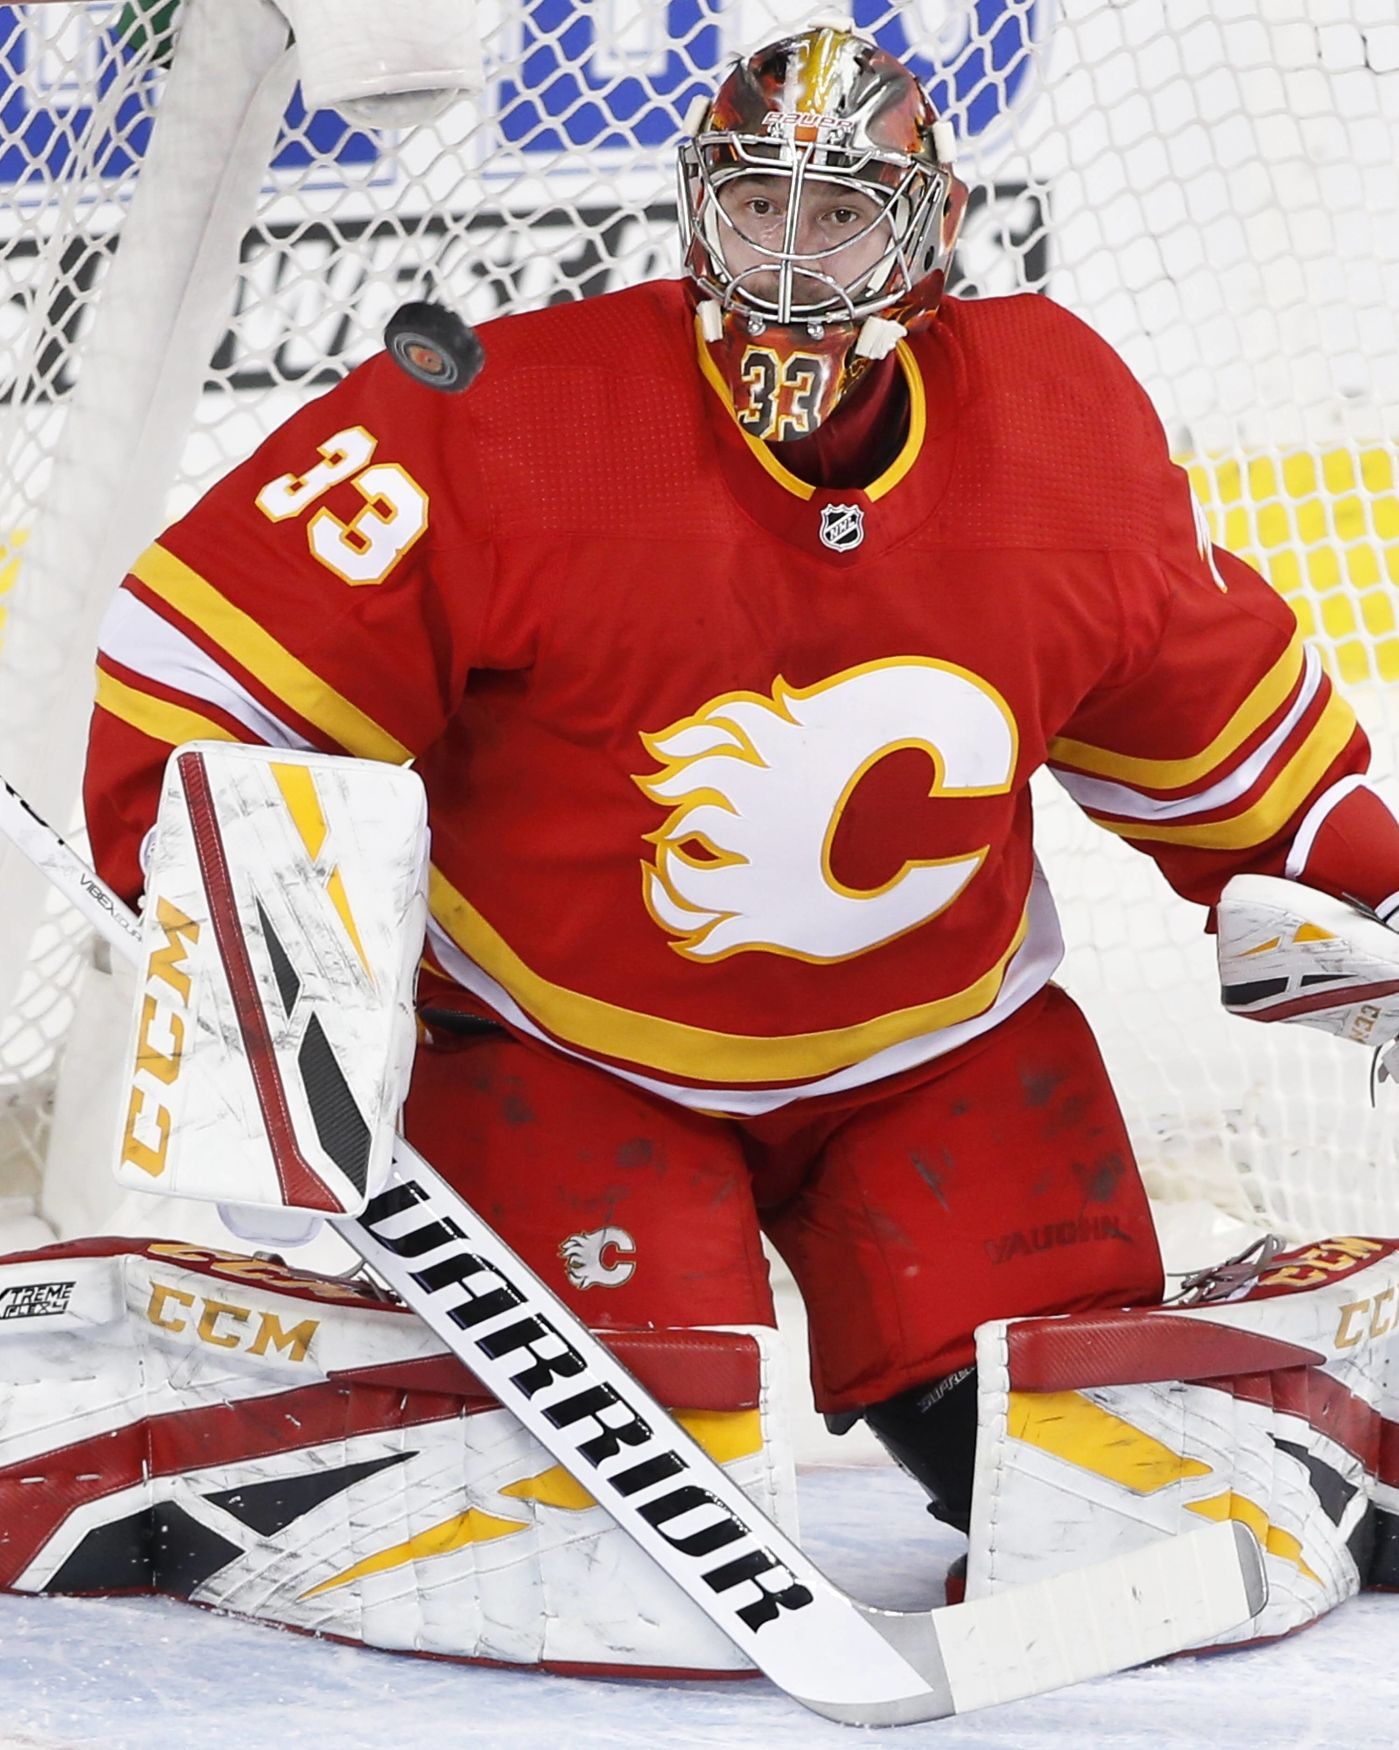 NHL 2018/19, Calgary Flames, David Rittich